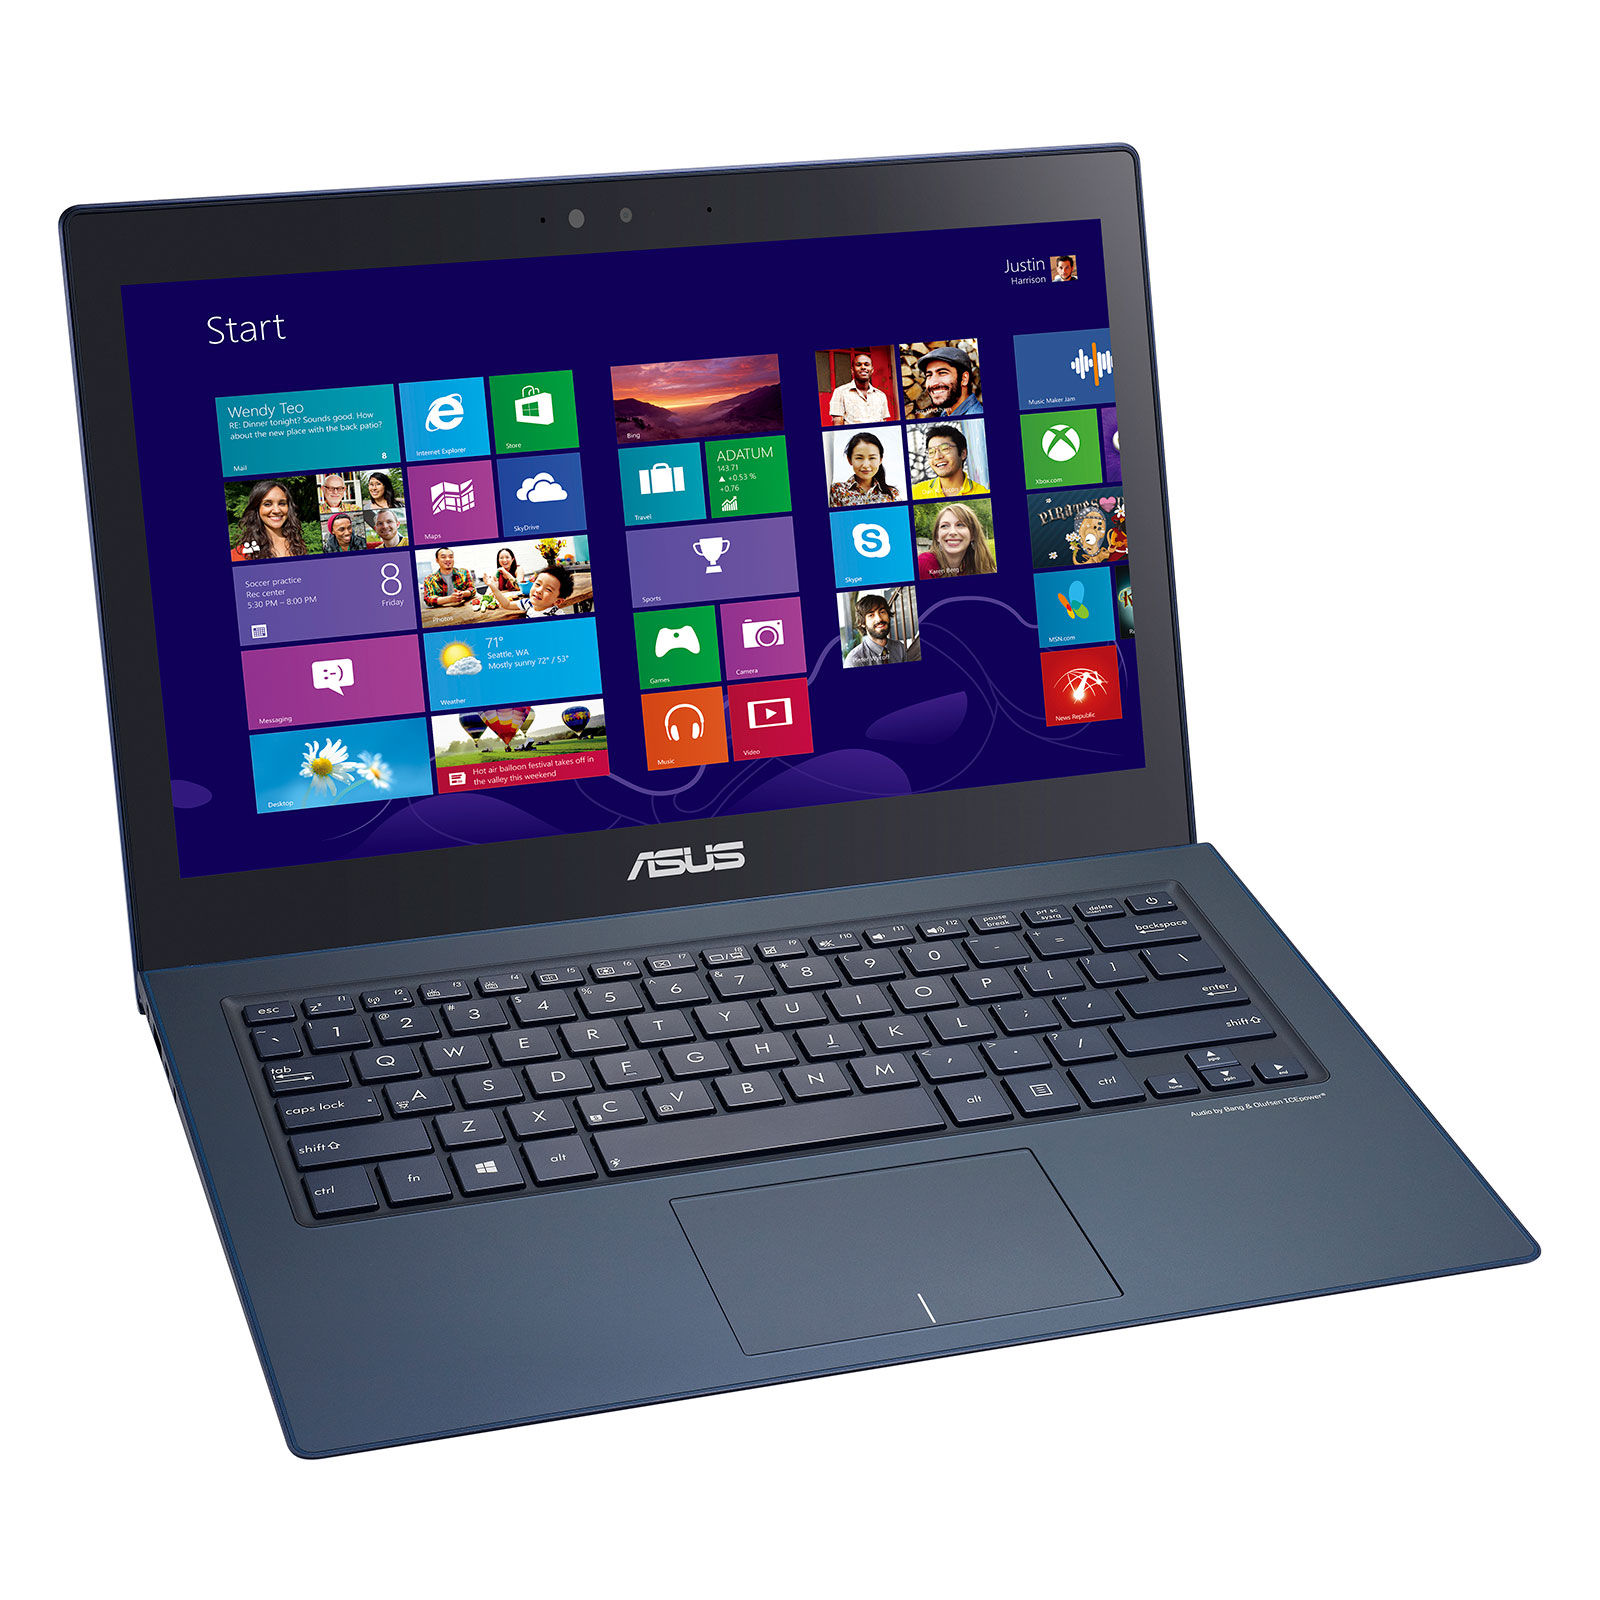 asus zenbook ux301la c4003p pc portable asus sur. Black Bedroom Furniture Sets. Home Design Ideas